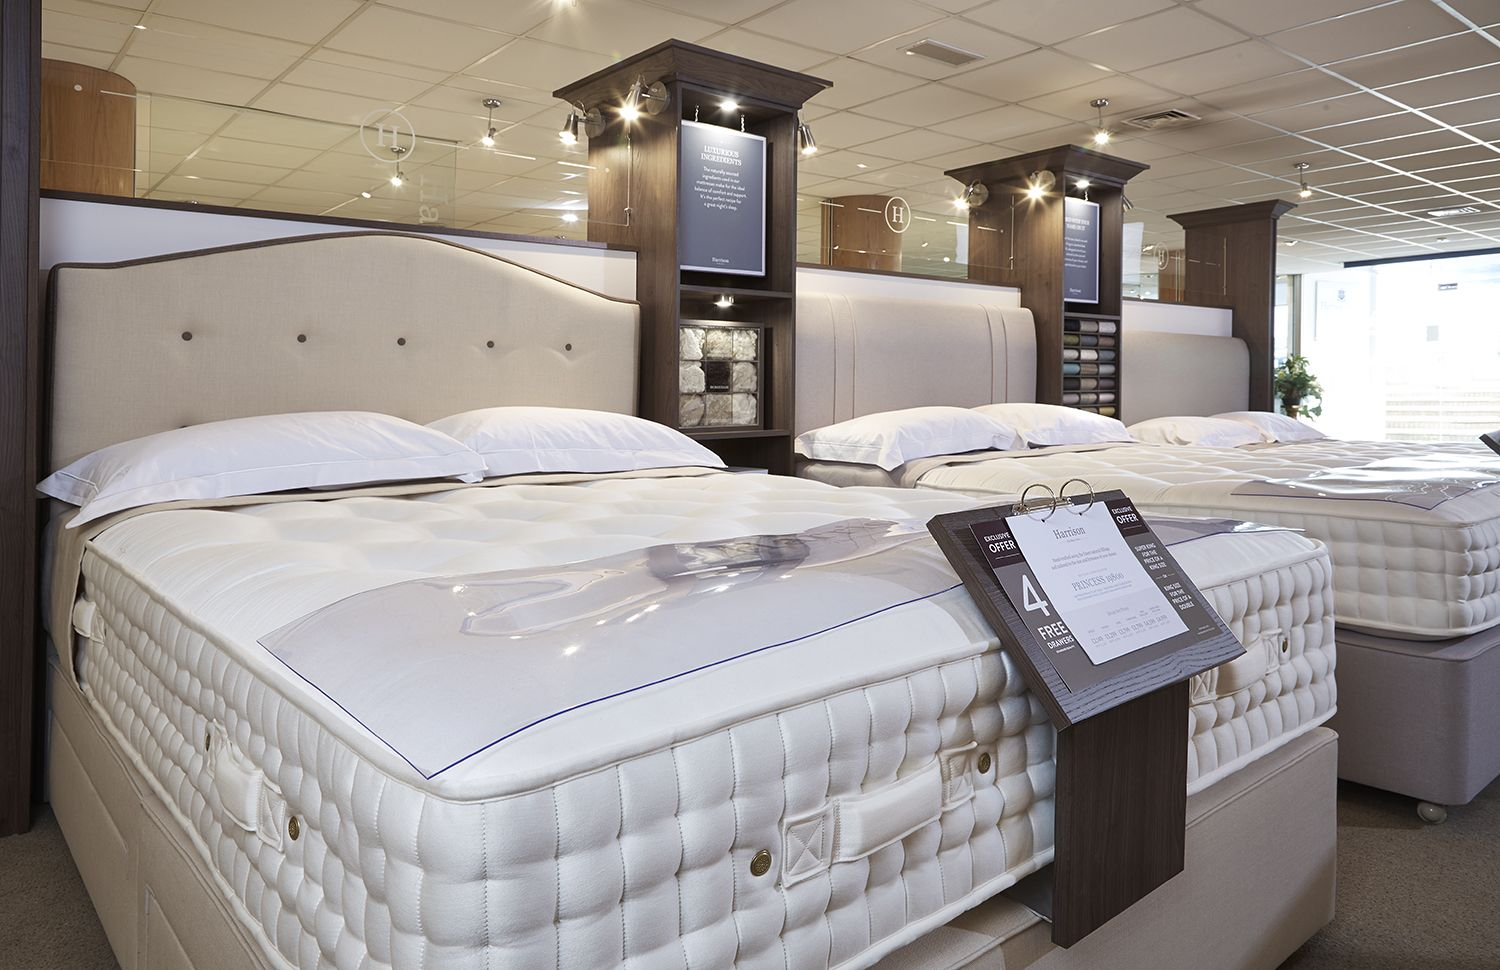 Mattress Buying Guide: In the Showroom - Harrison Beds | Mattress ...